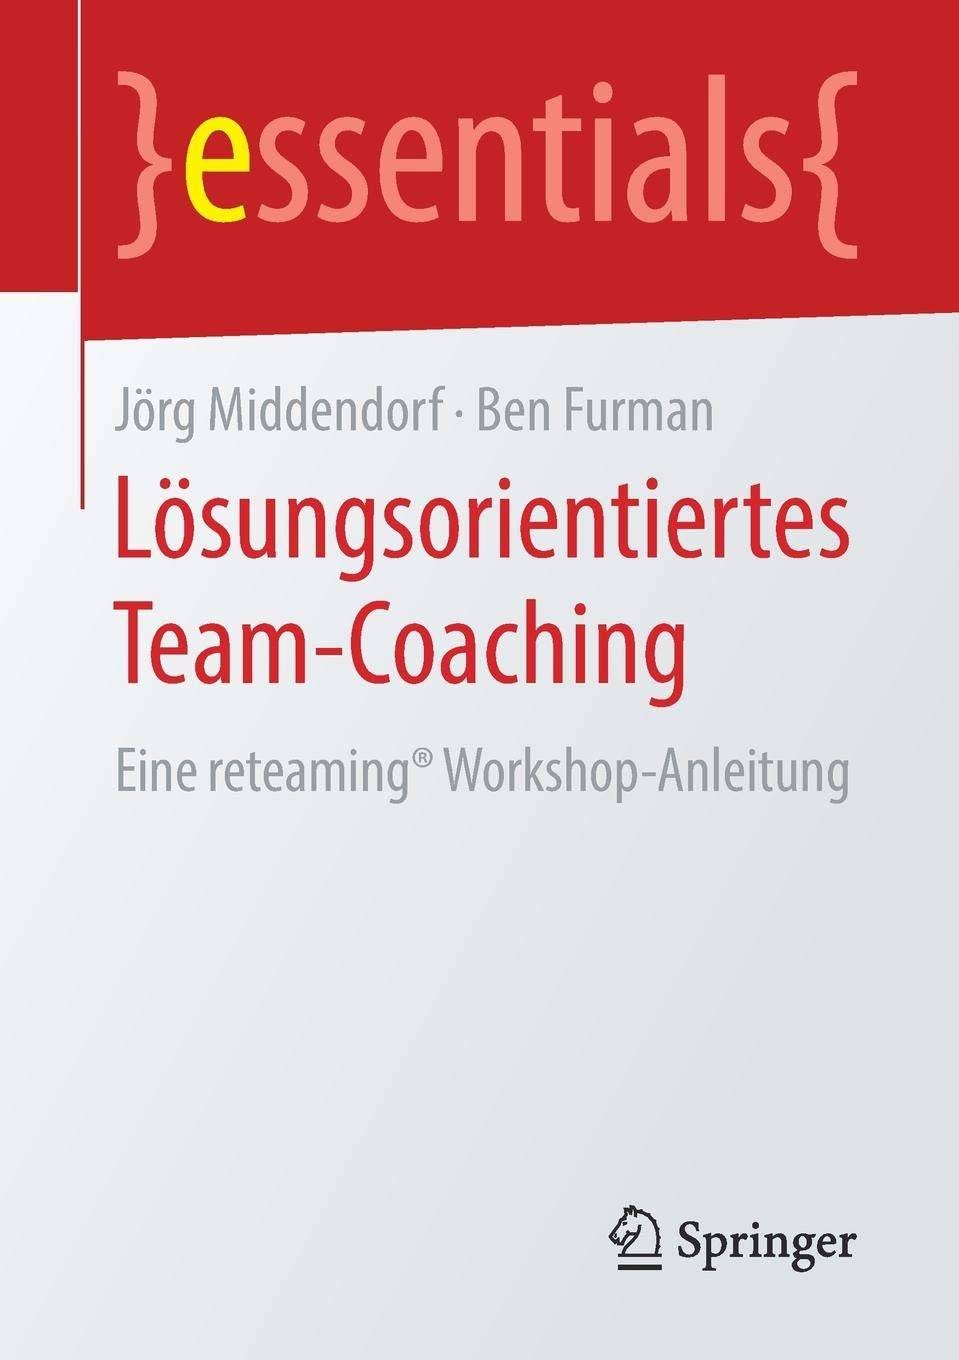 LF Team-Coaching-Buch